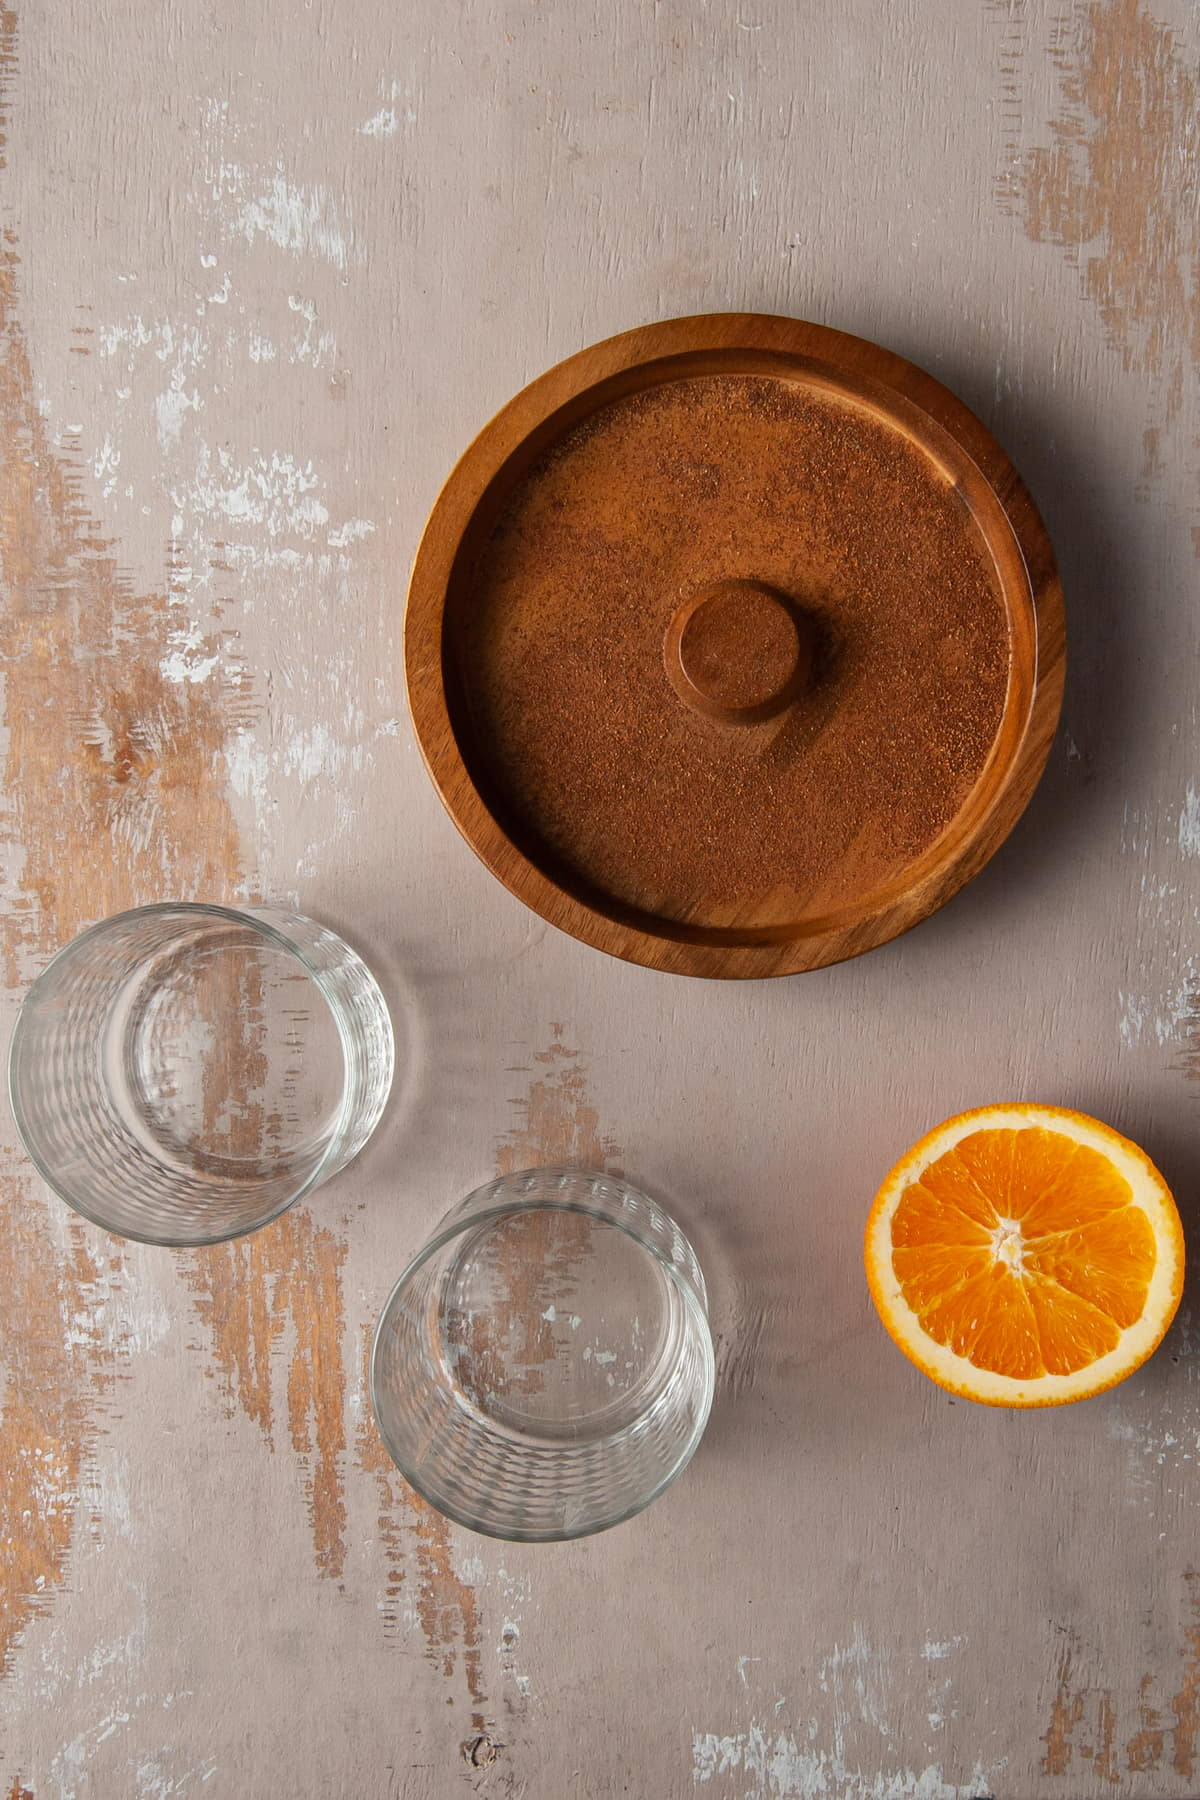 cocktail timmer filler with cinnamon, 2 glasses, and half an orange